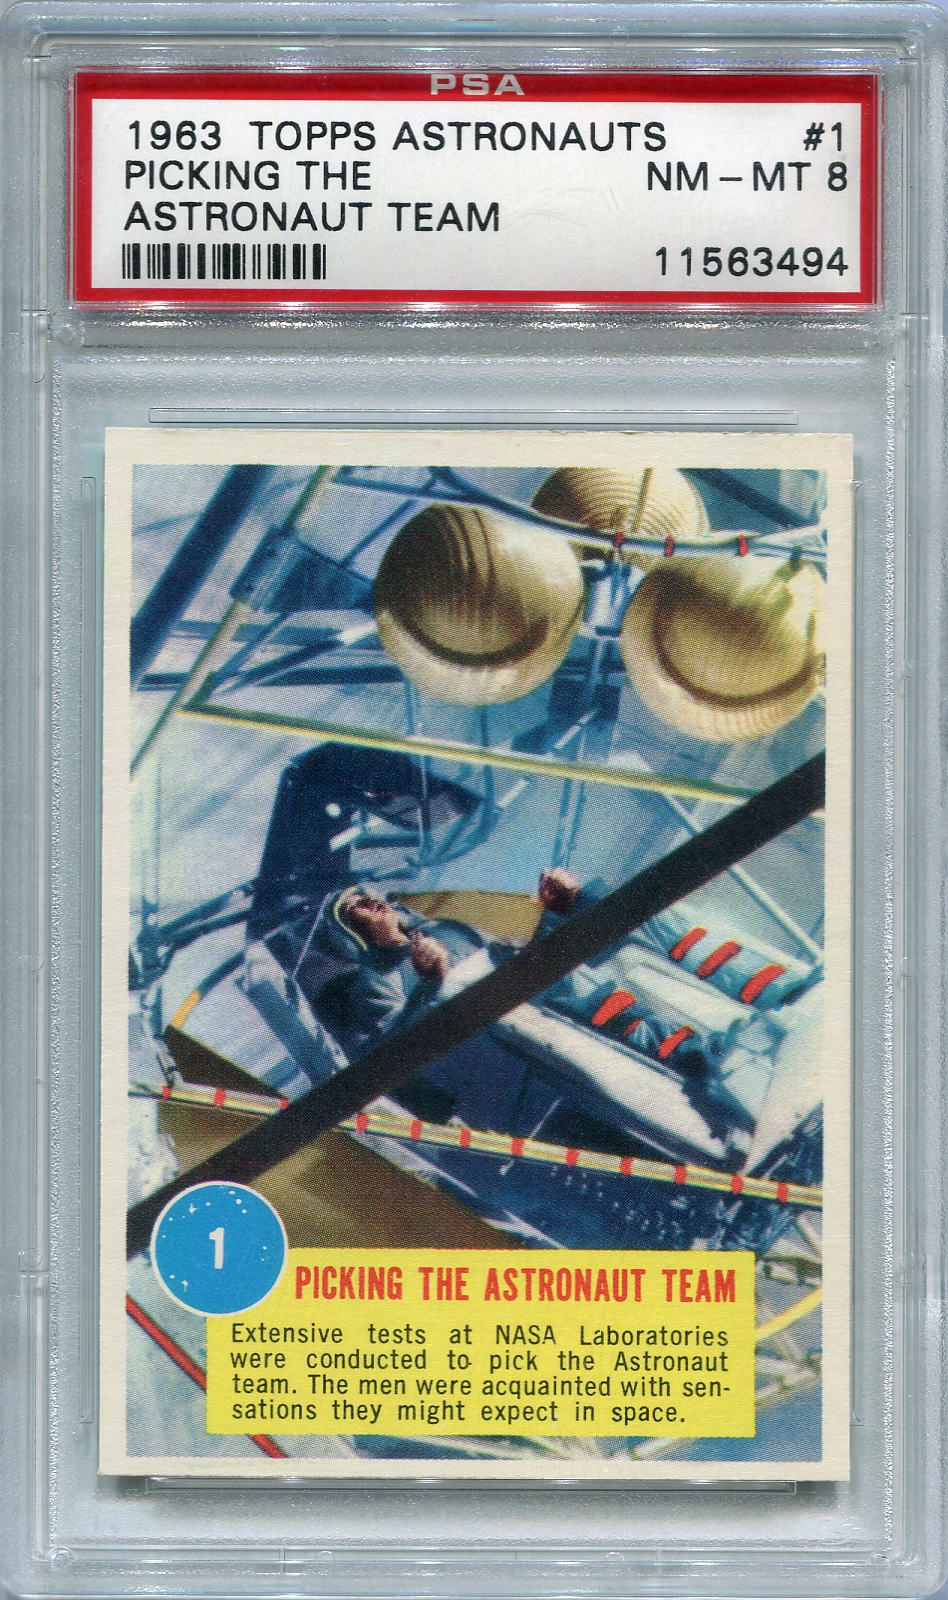 1963 Topps Astronauts - Picking The Astronaut Team #1 PSA 8 NM-MT